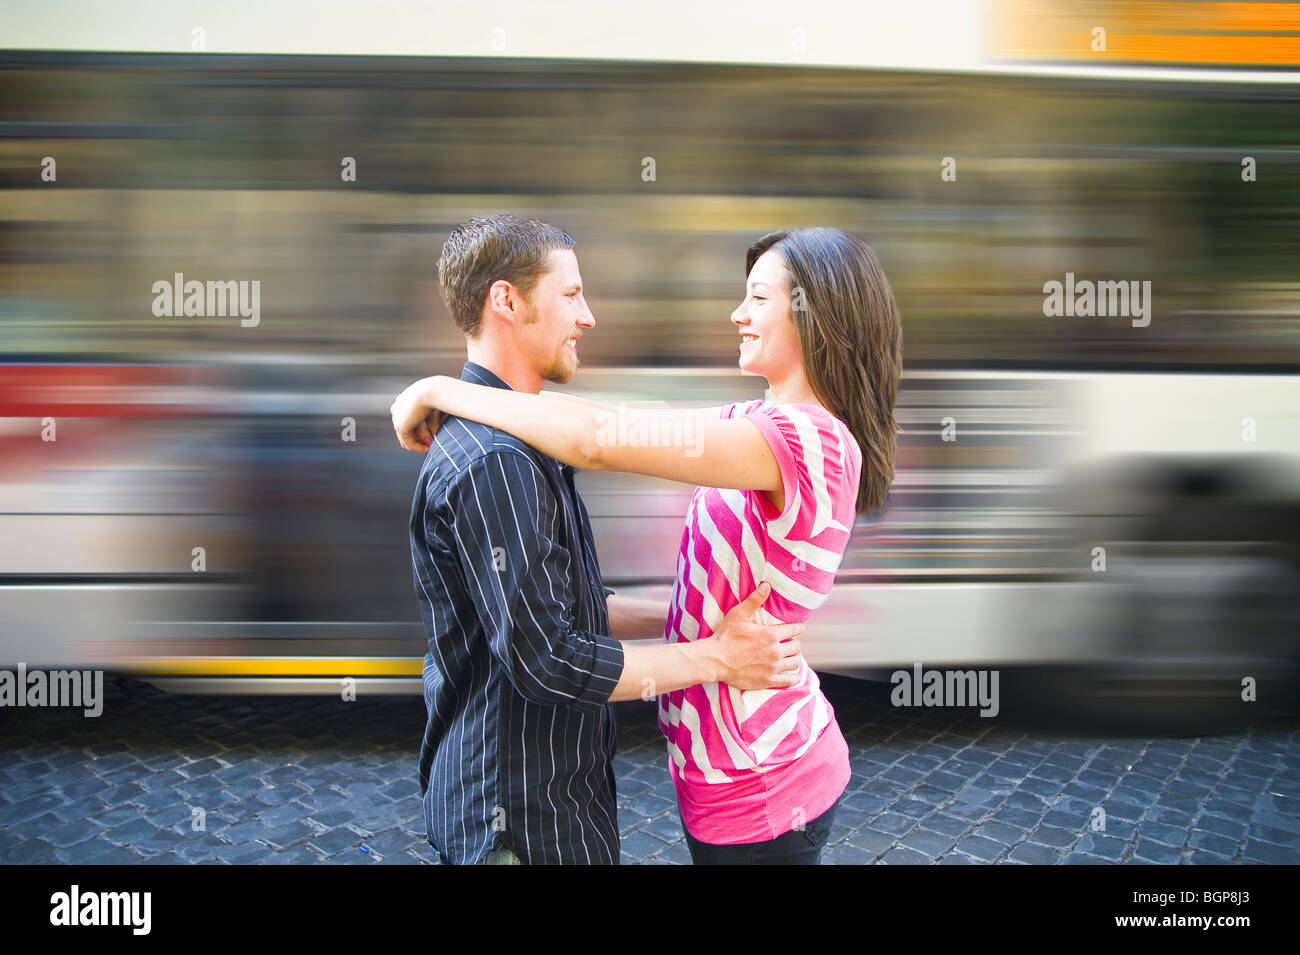 Young couple at train station Photo Stock